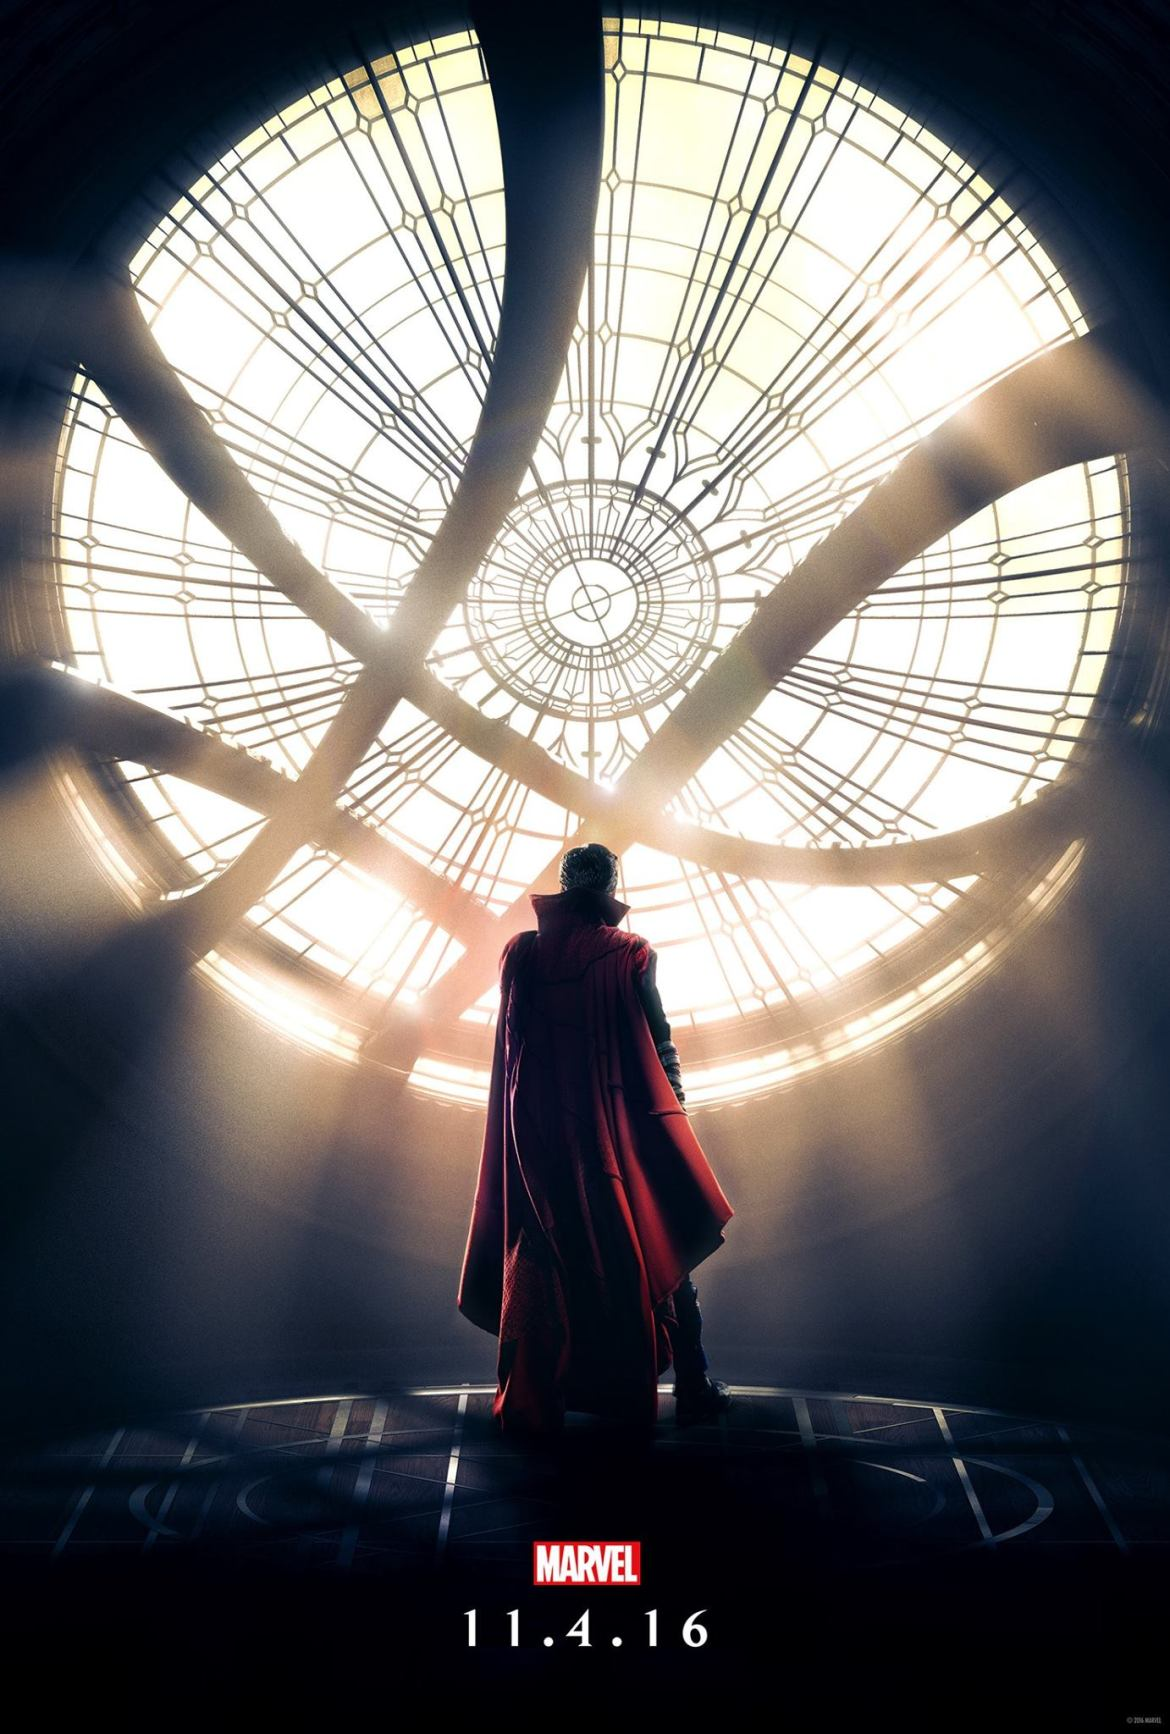 New Doctor Strange Trailer Released